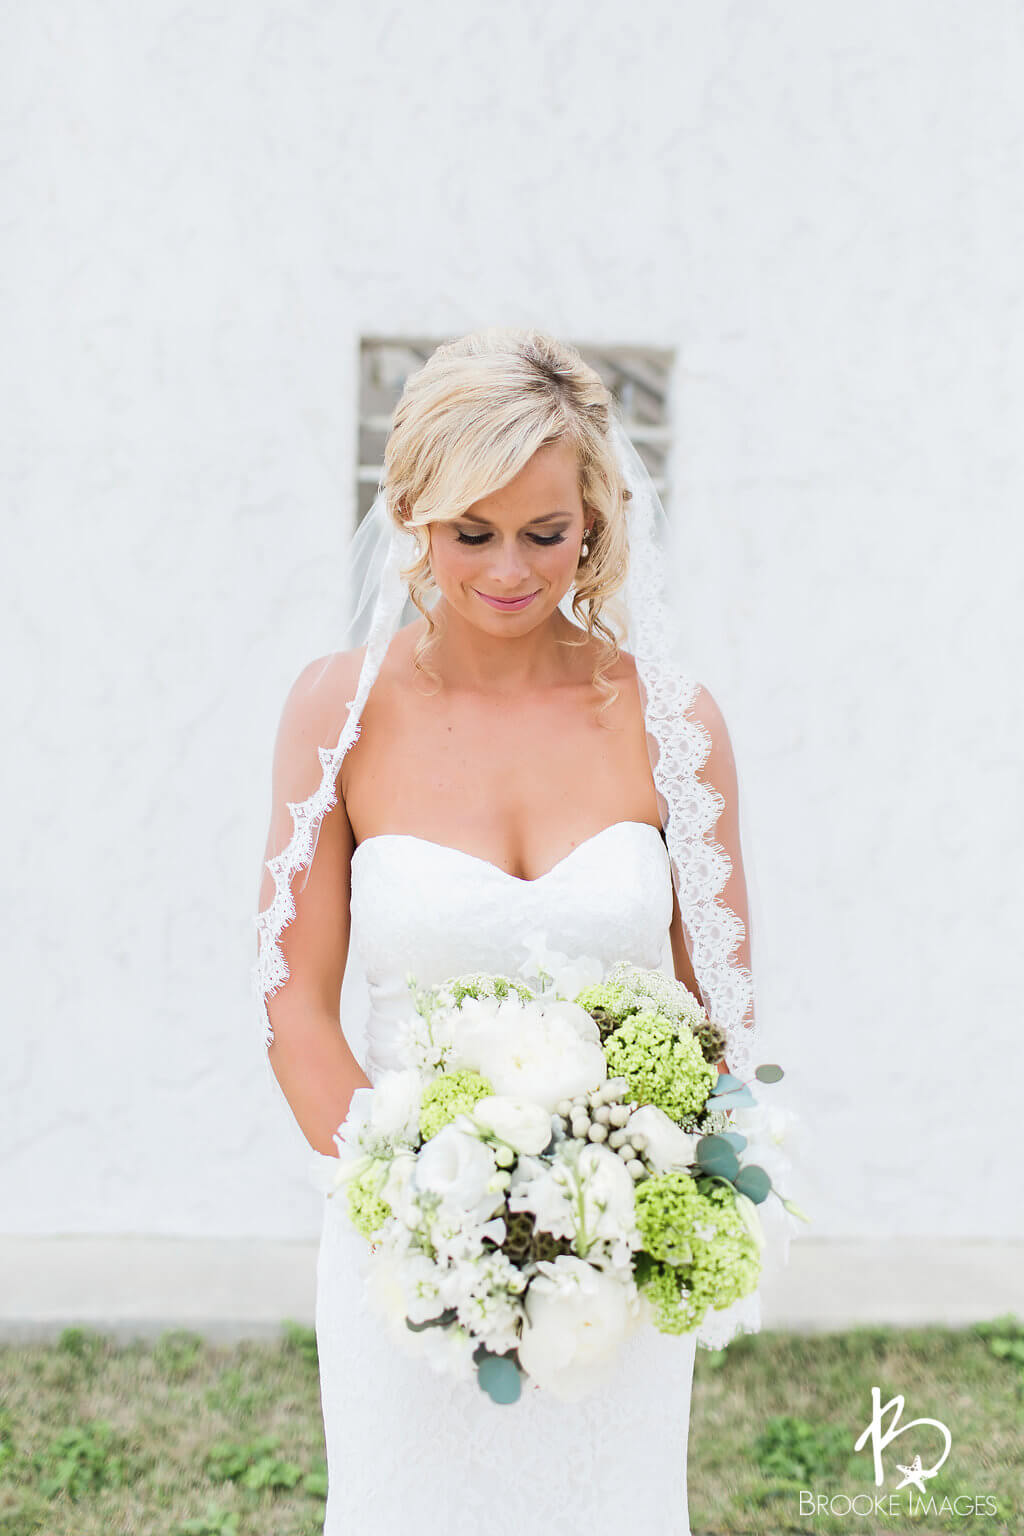 hair-salon-jacksonville-wedding-hairstyles-25